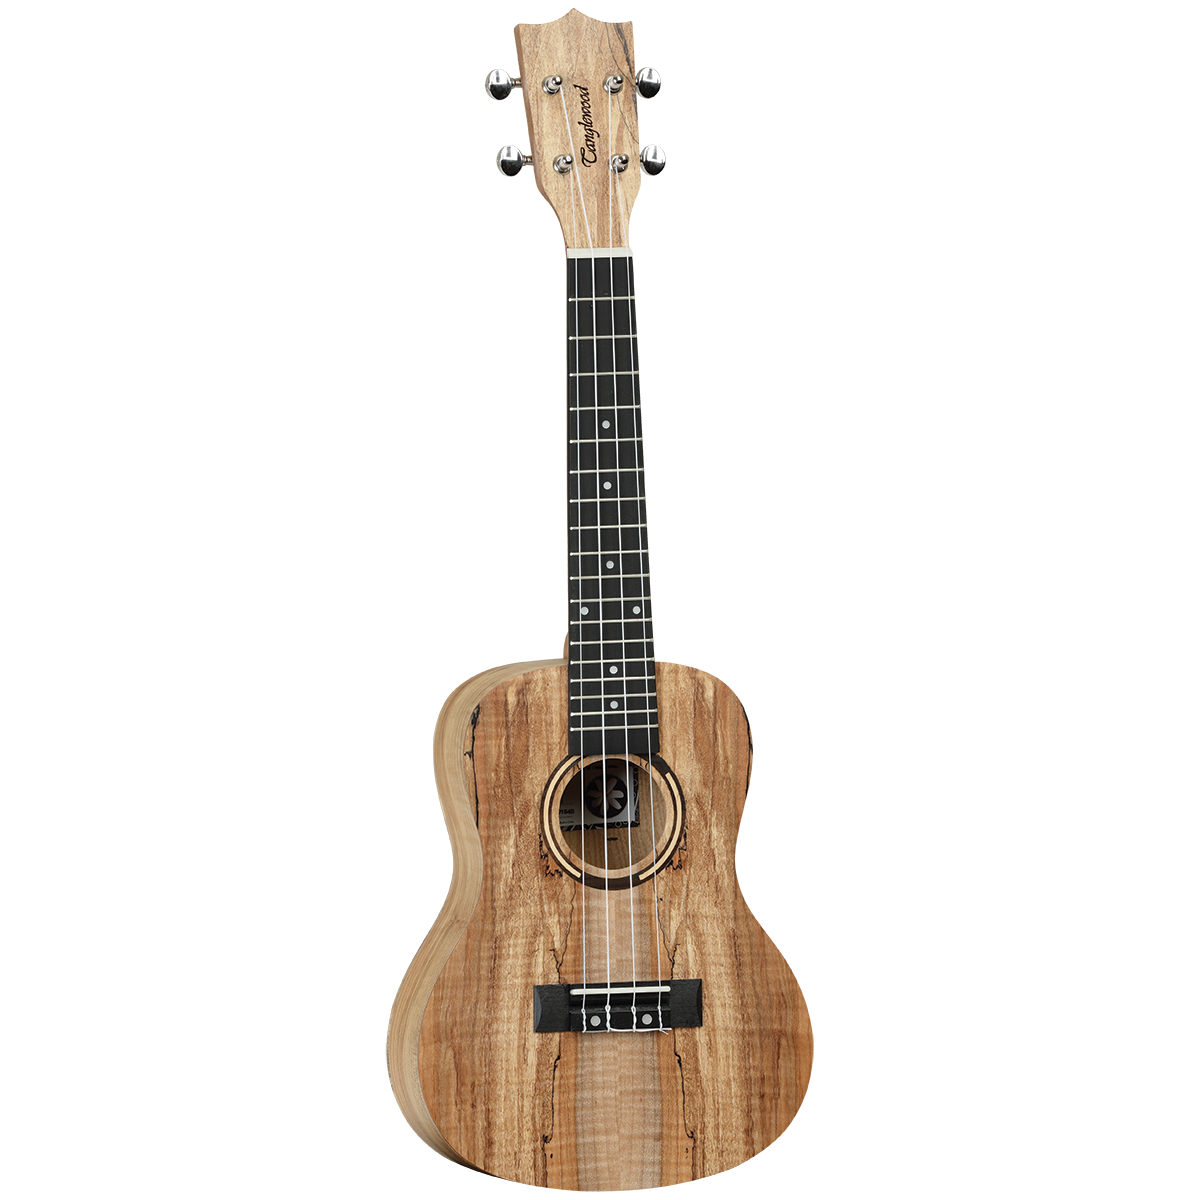 Tanglewood TWT10 Tiare Concert Ukulele All Spalted Maple Ivory White Uke w/ Bag